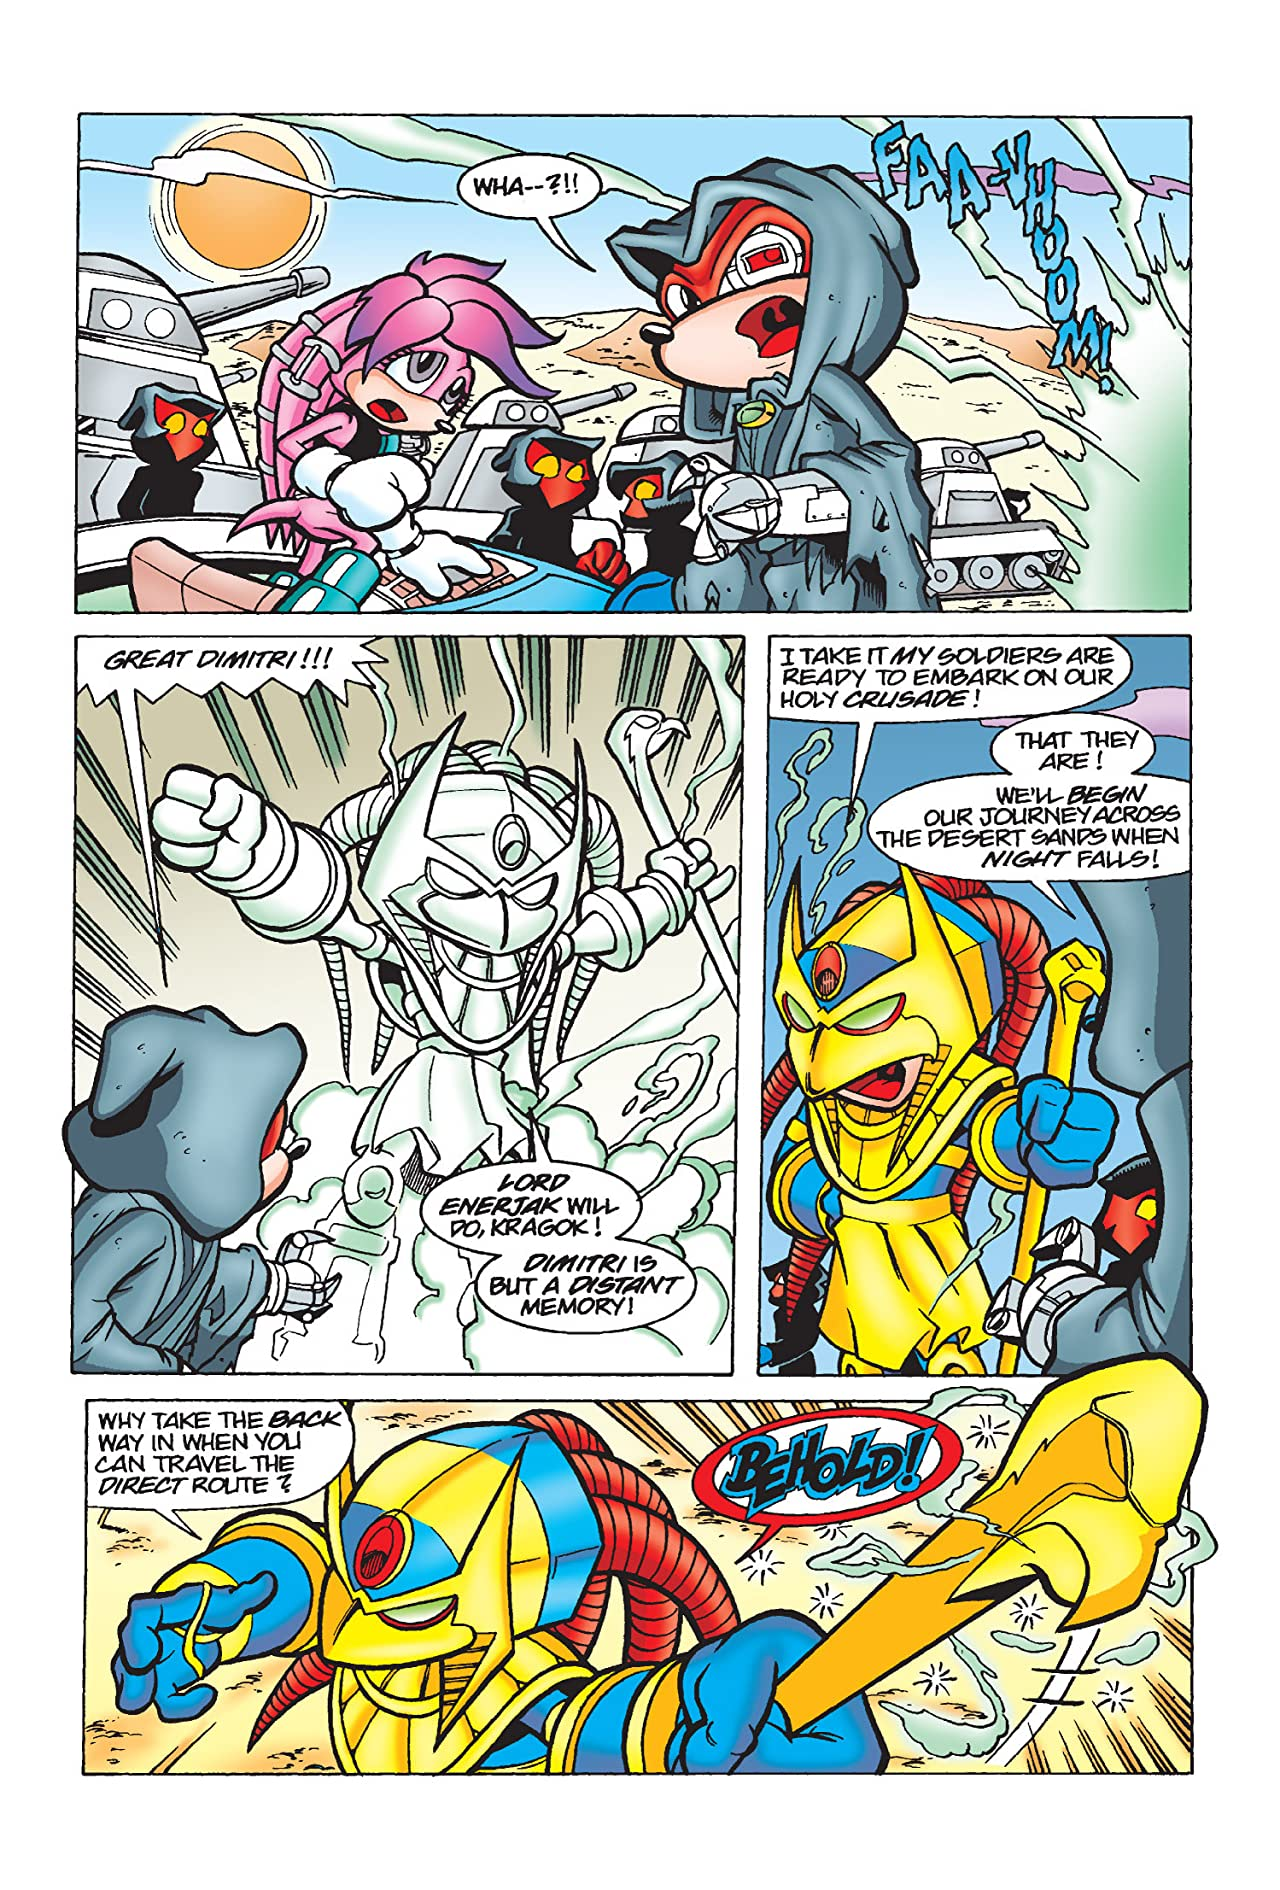 Knuckles the Echidna #9